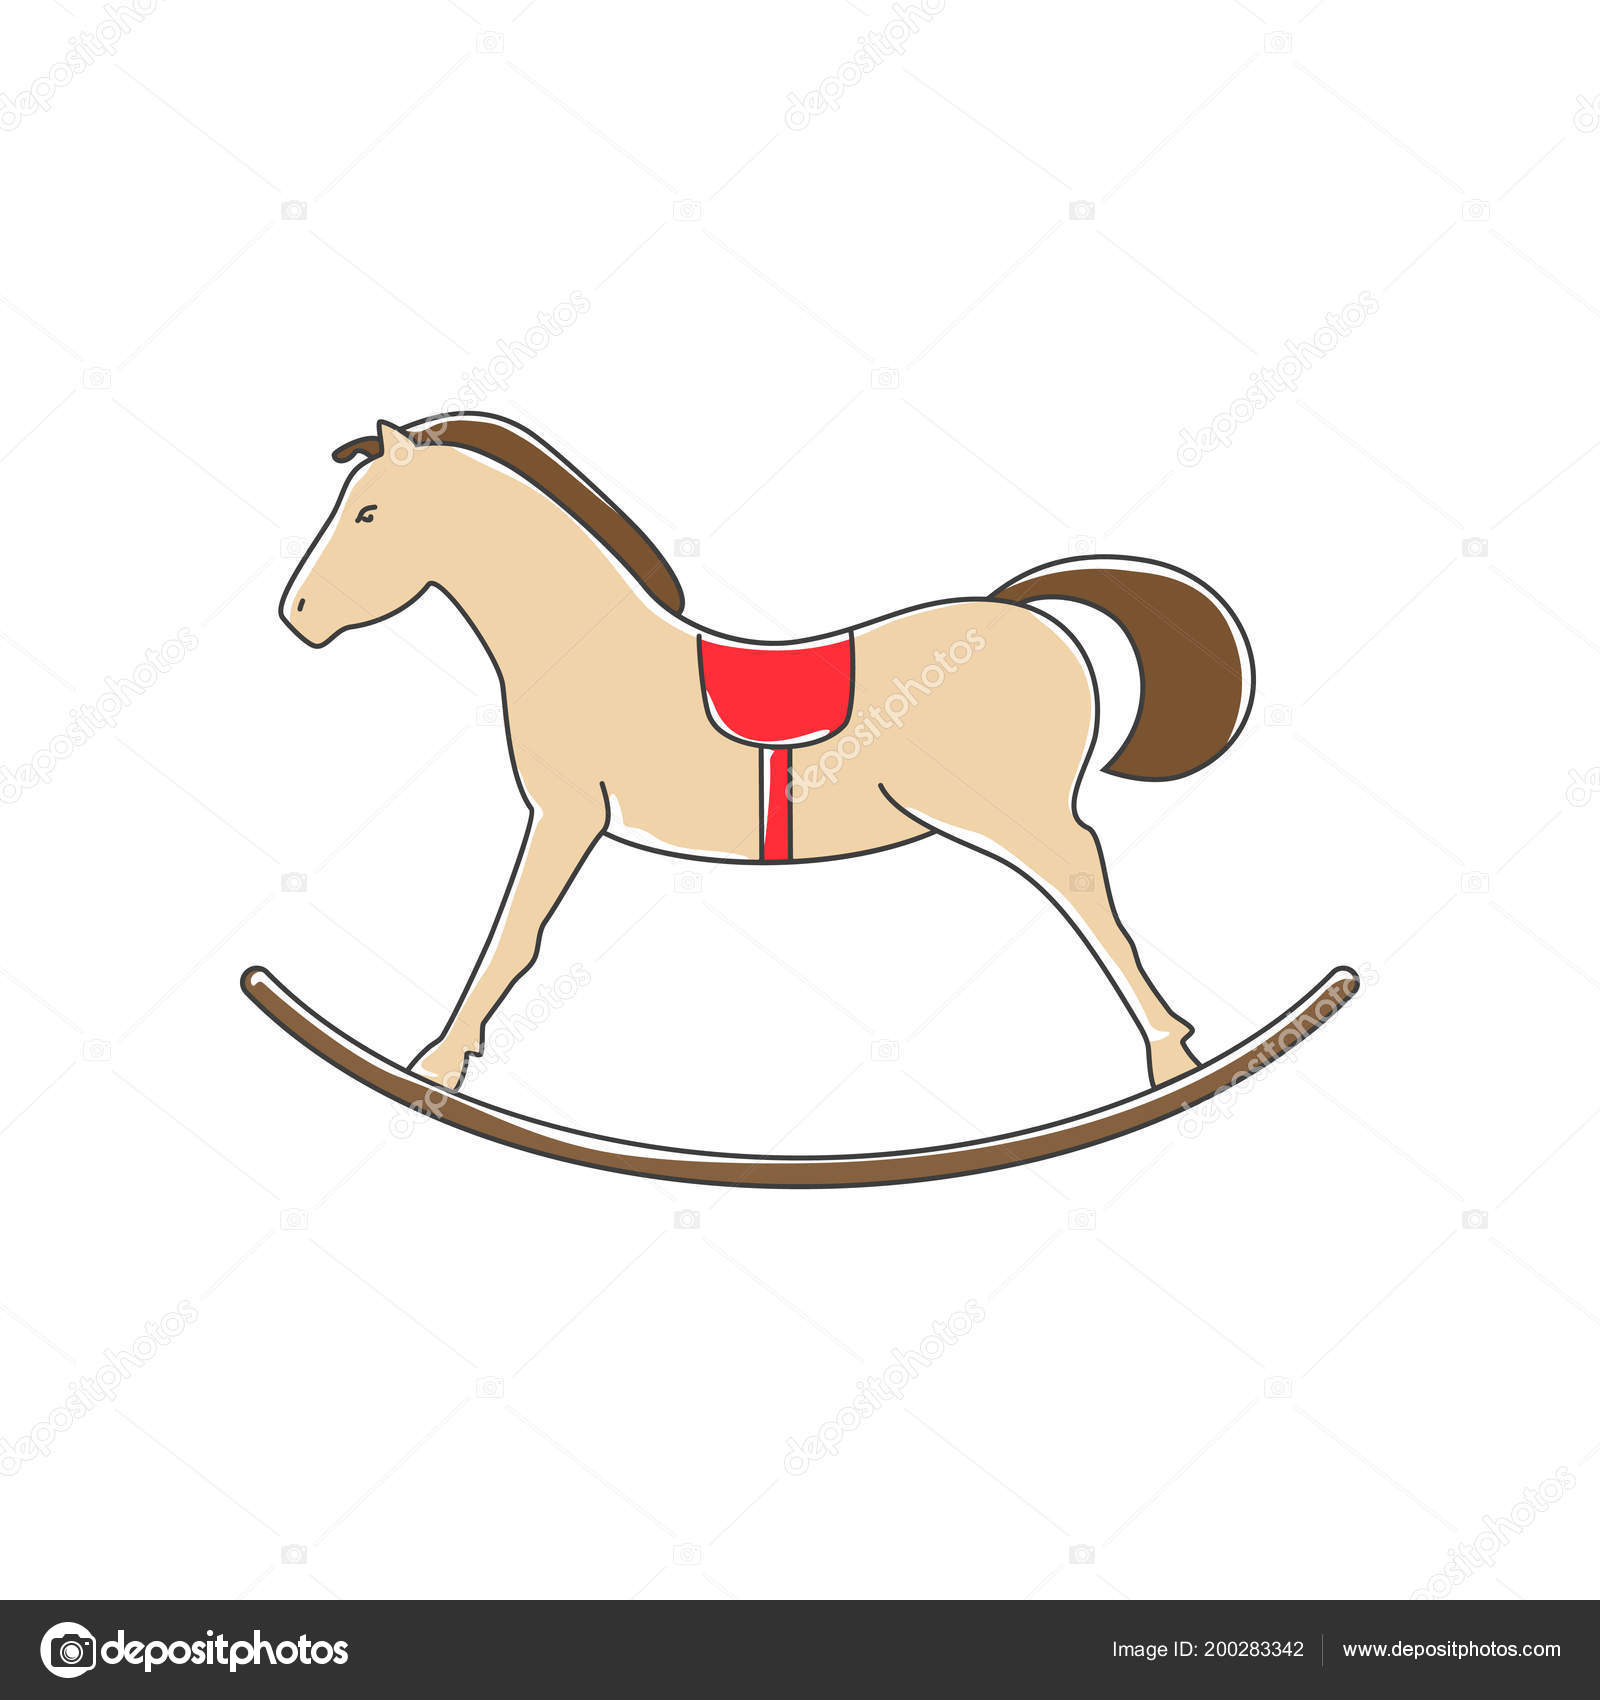 Rocking Horse Isolated White Background Merry Christmas Happy New Year Stock Vector C Serz72 200283342